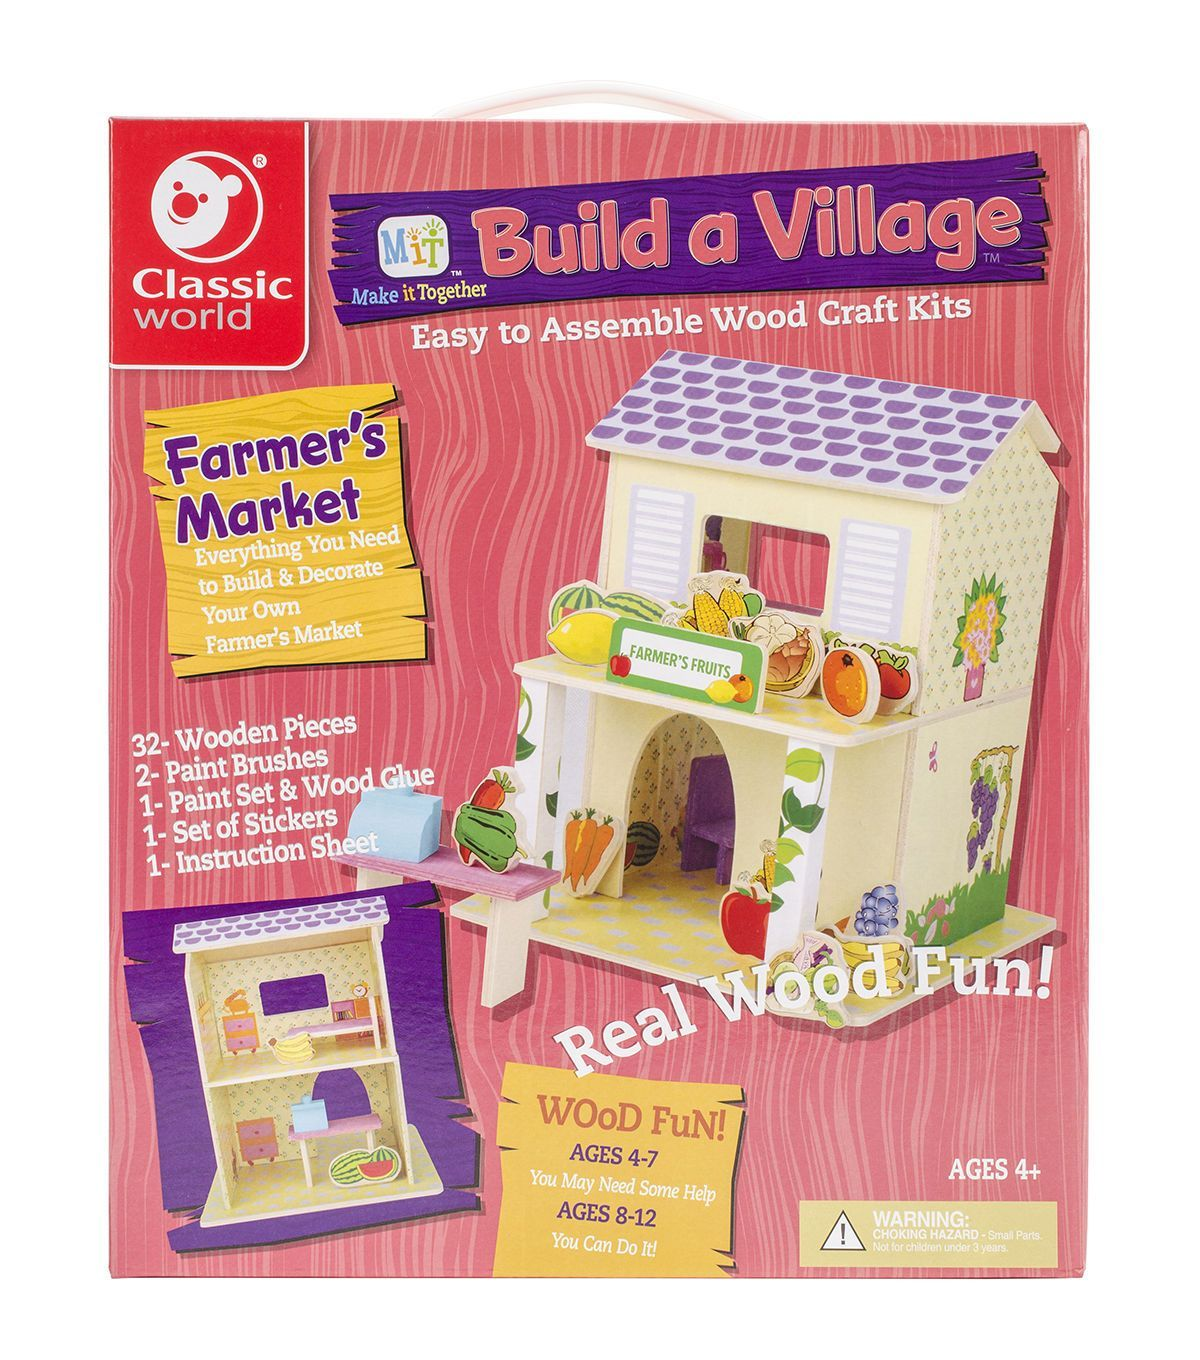 Kids wood craft kits - Classic World Mit Build A Village Wood Craft Kit Farmer S Market